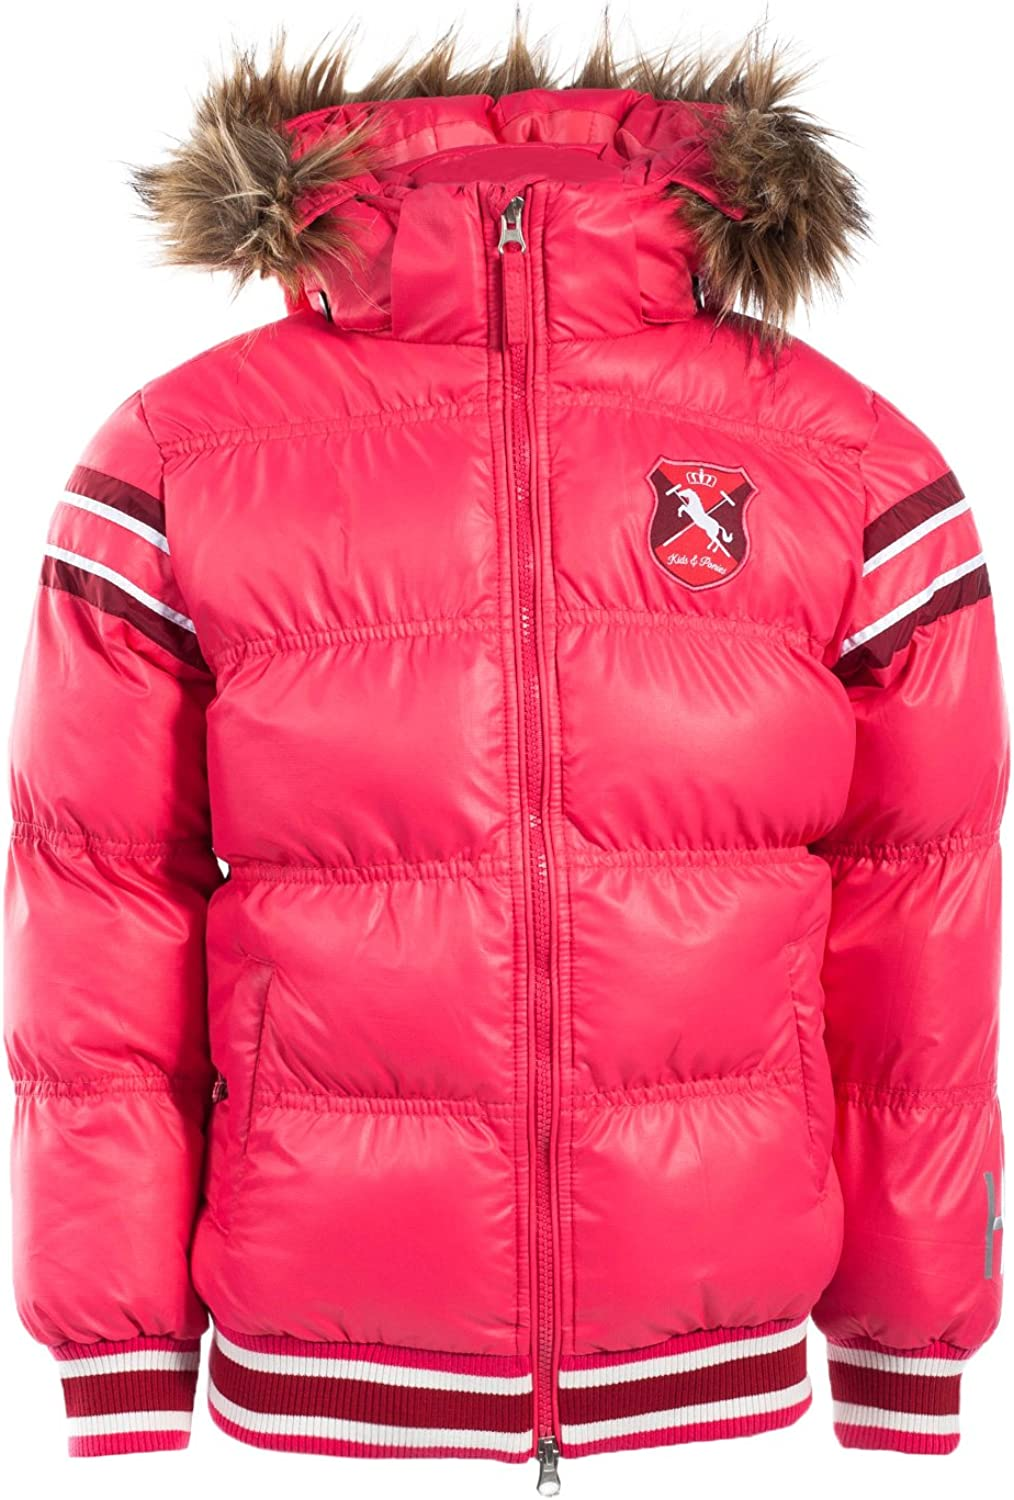 Quantity limited Horze Kids Ponies Padded Jacket Hot Hood Max 68% OFF with Reomvable Pink